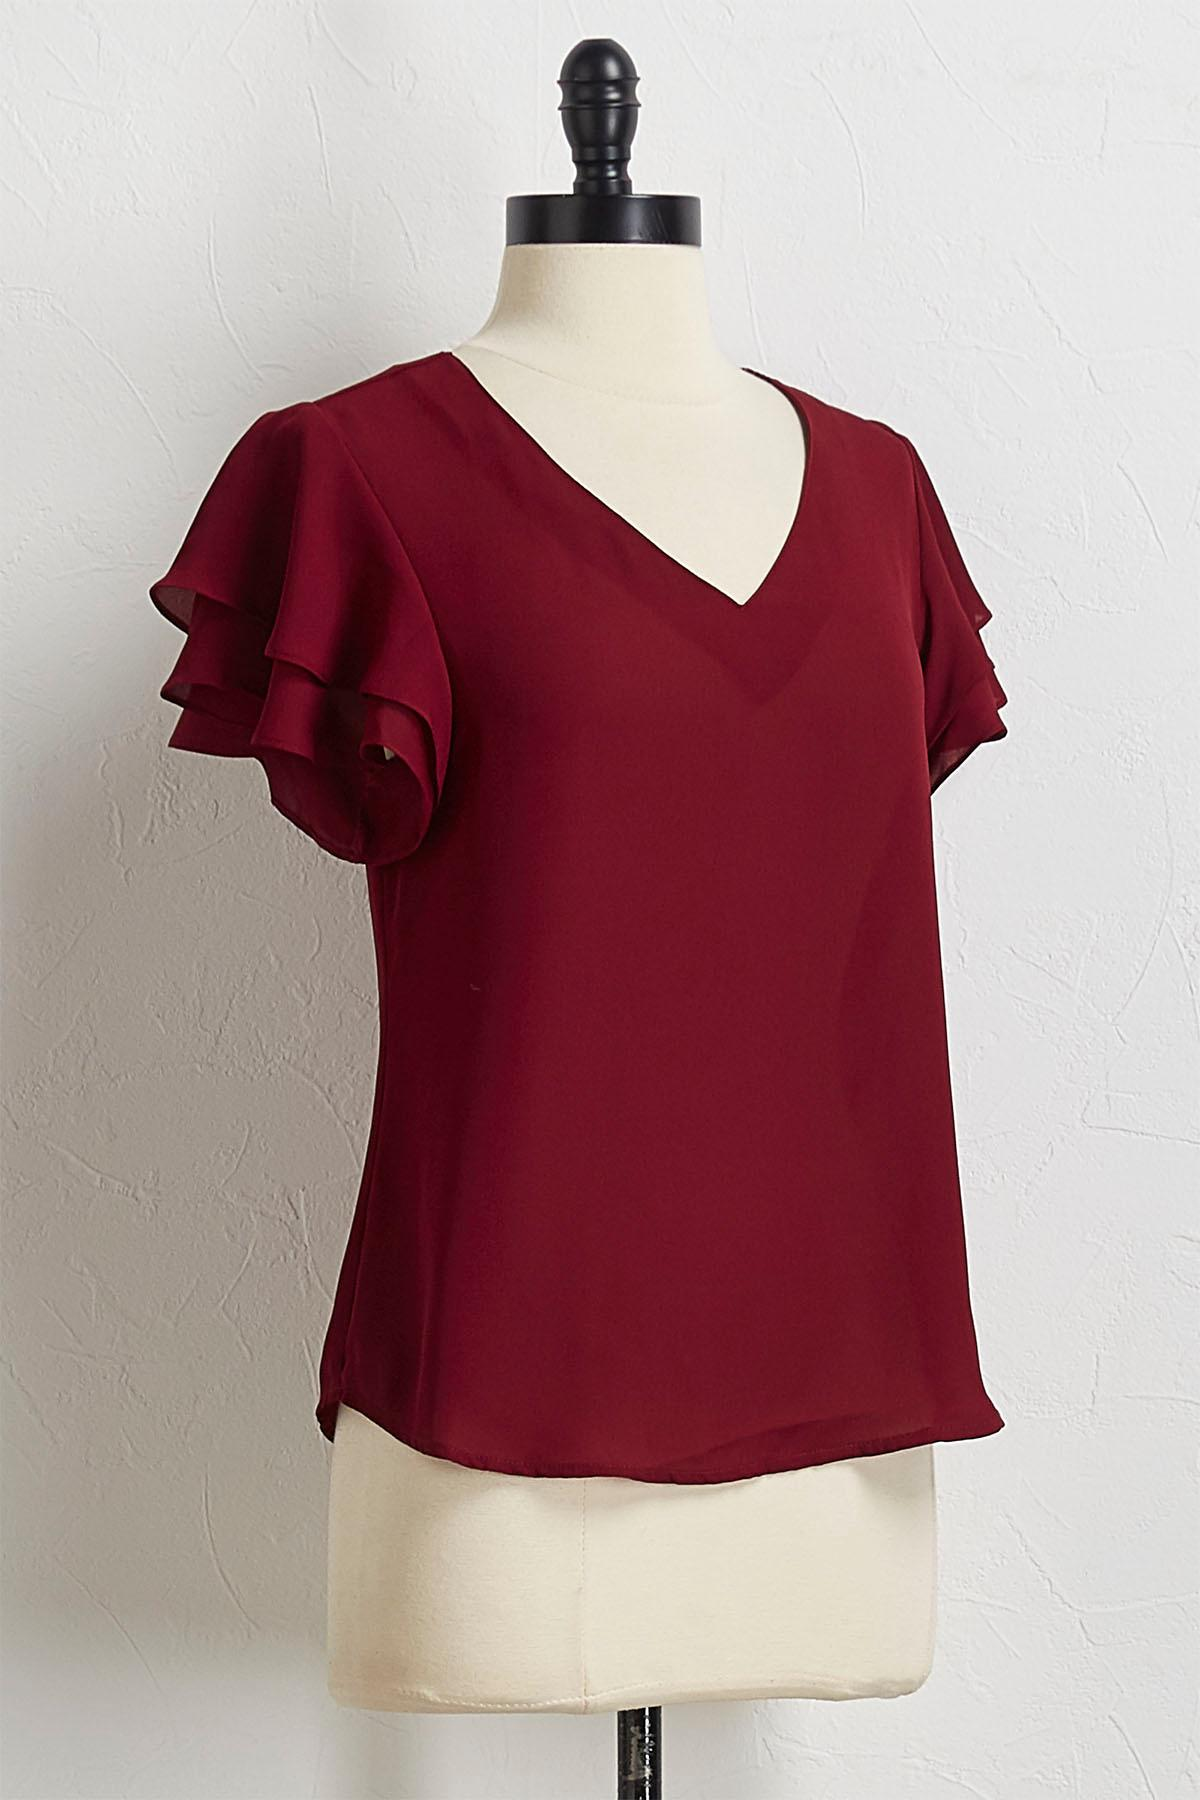 Autumn Ruffled Sleeve Top